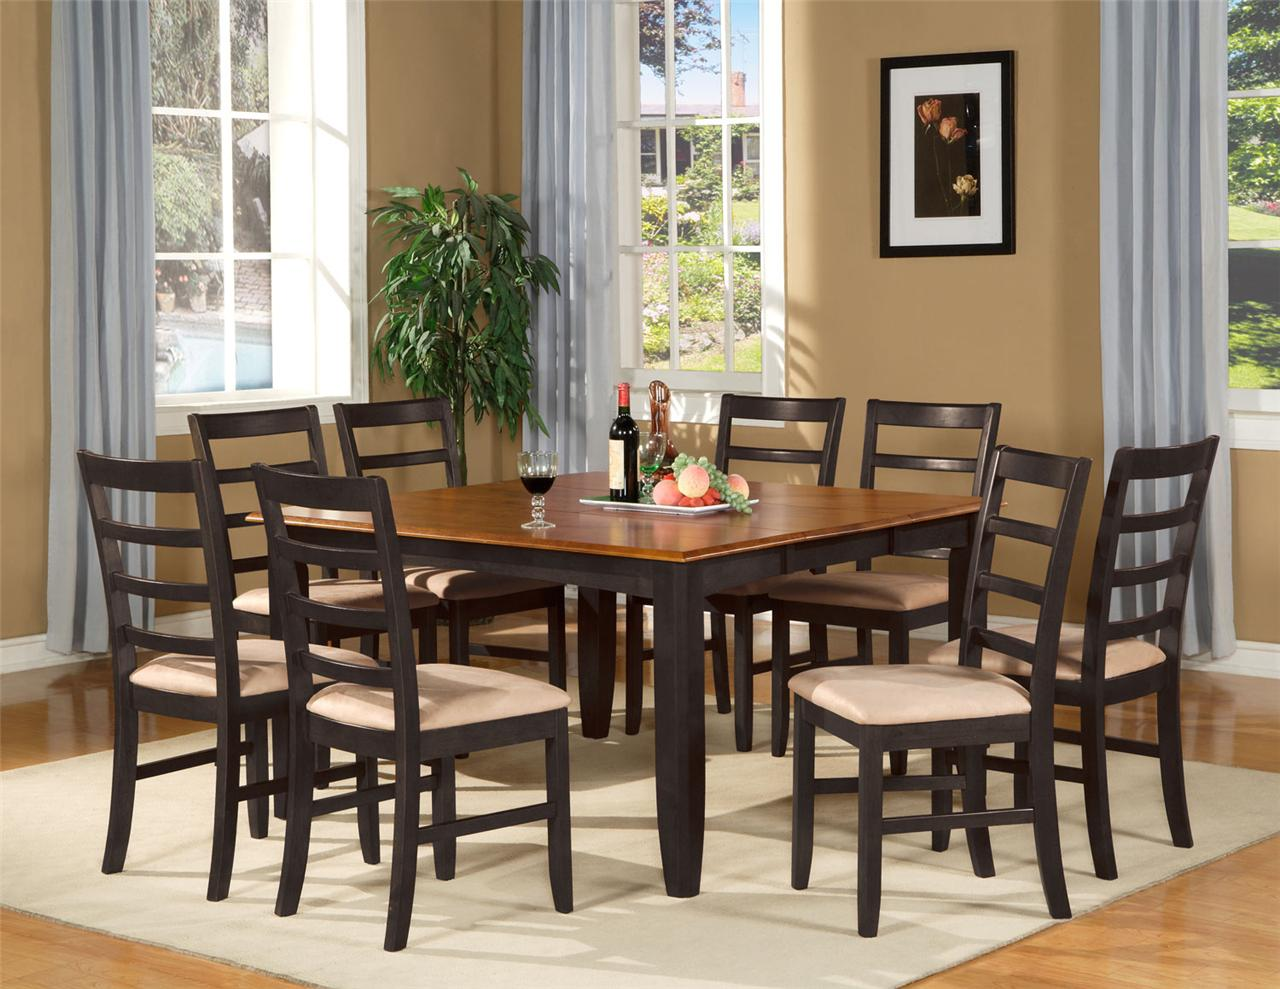 Dining room tables 8